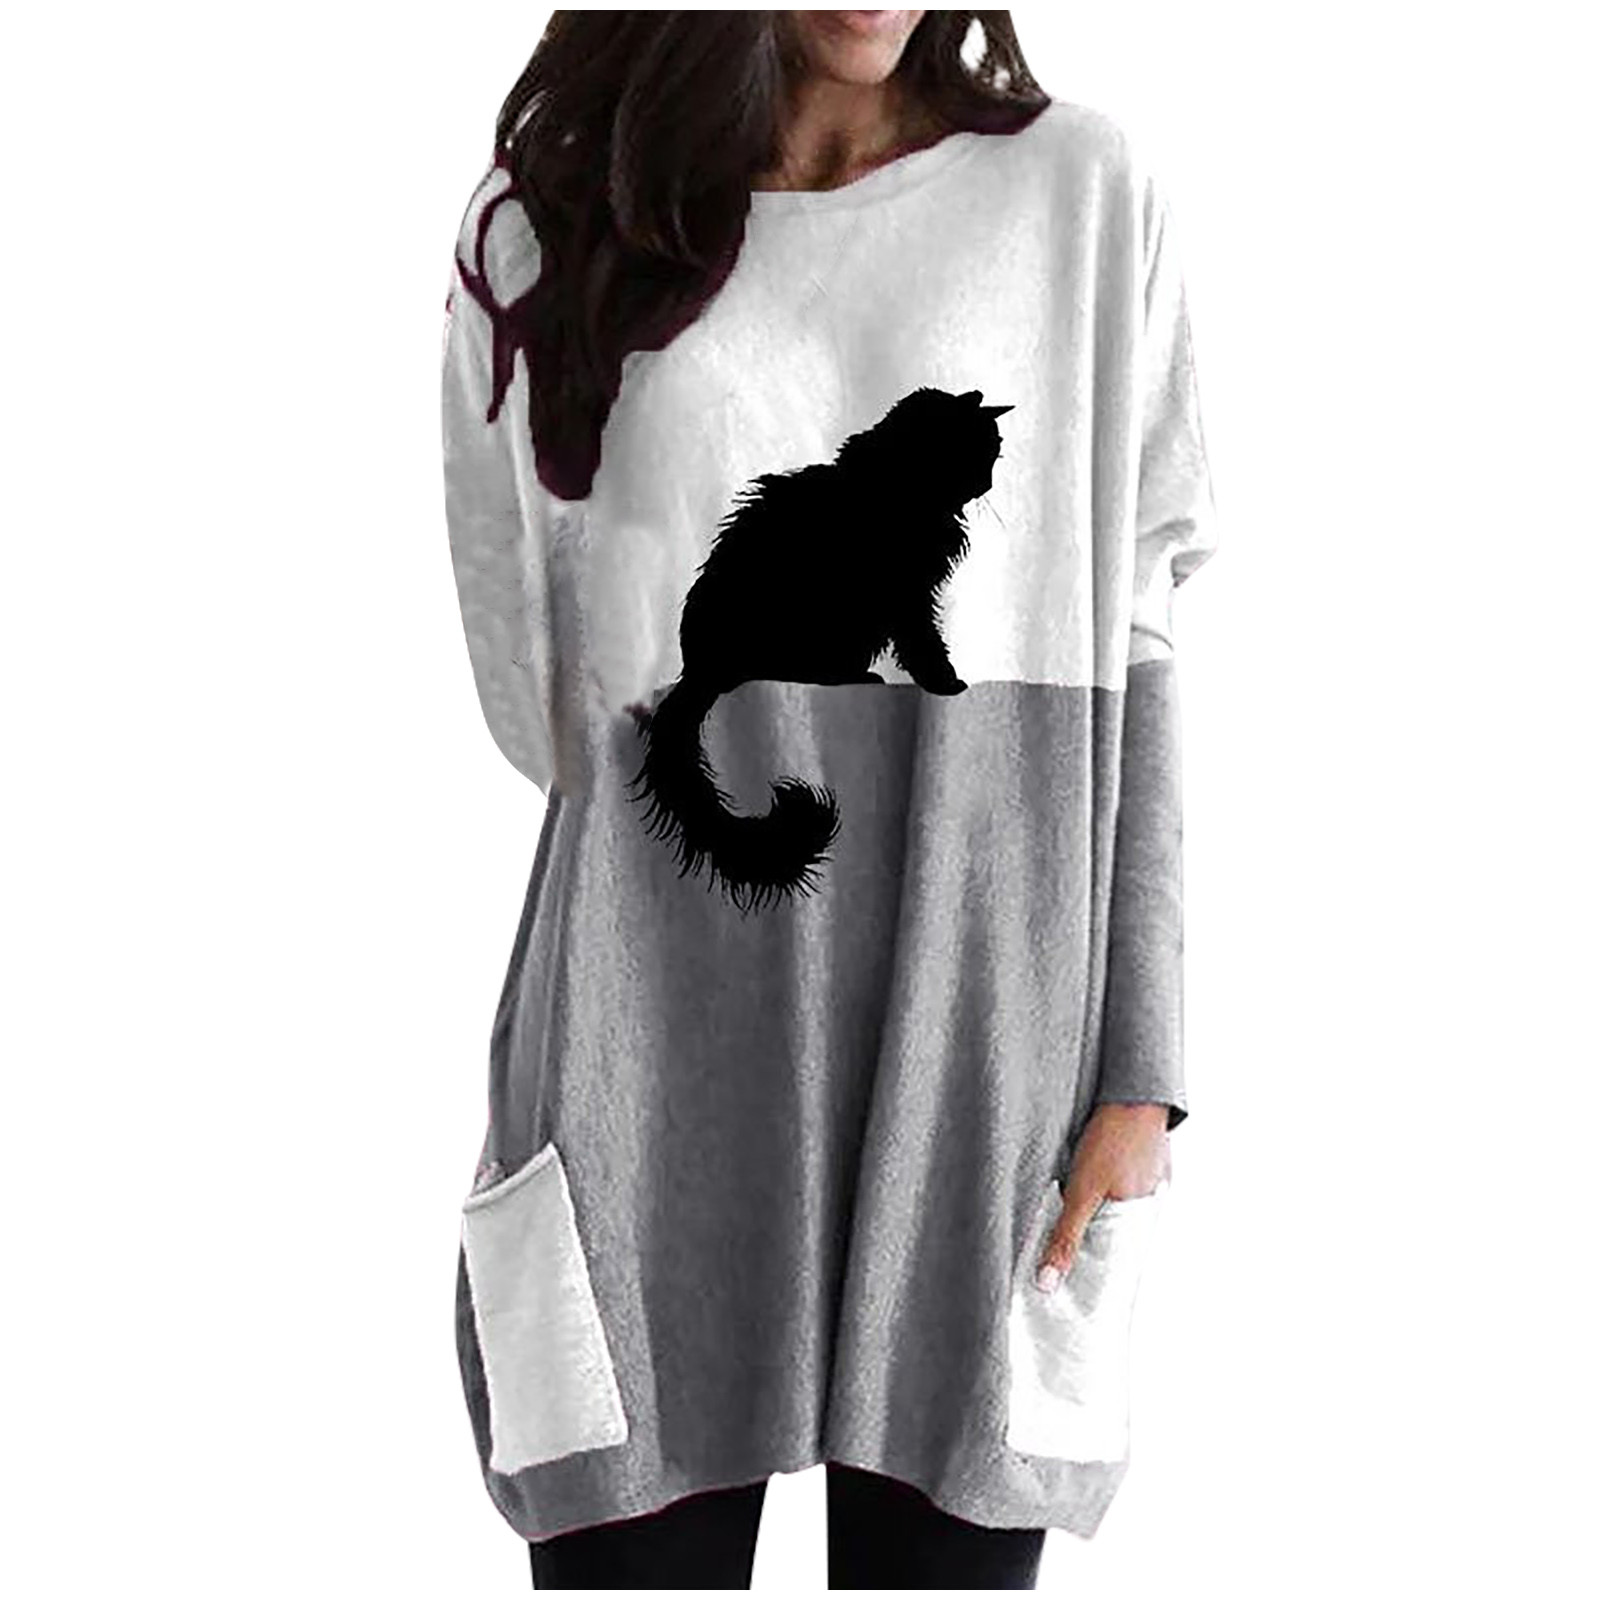 Women Oversized Sweatshirts Dress Christmas Monochrome Reindeer Print Drawstring Hoodie Dress Winter Warm Dresses Falda